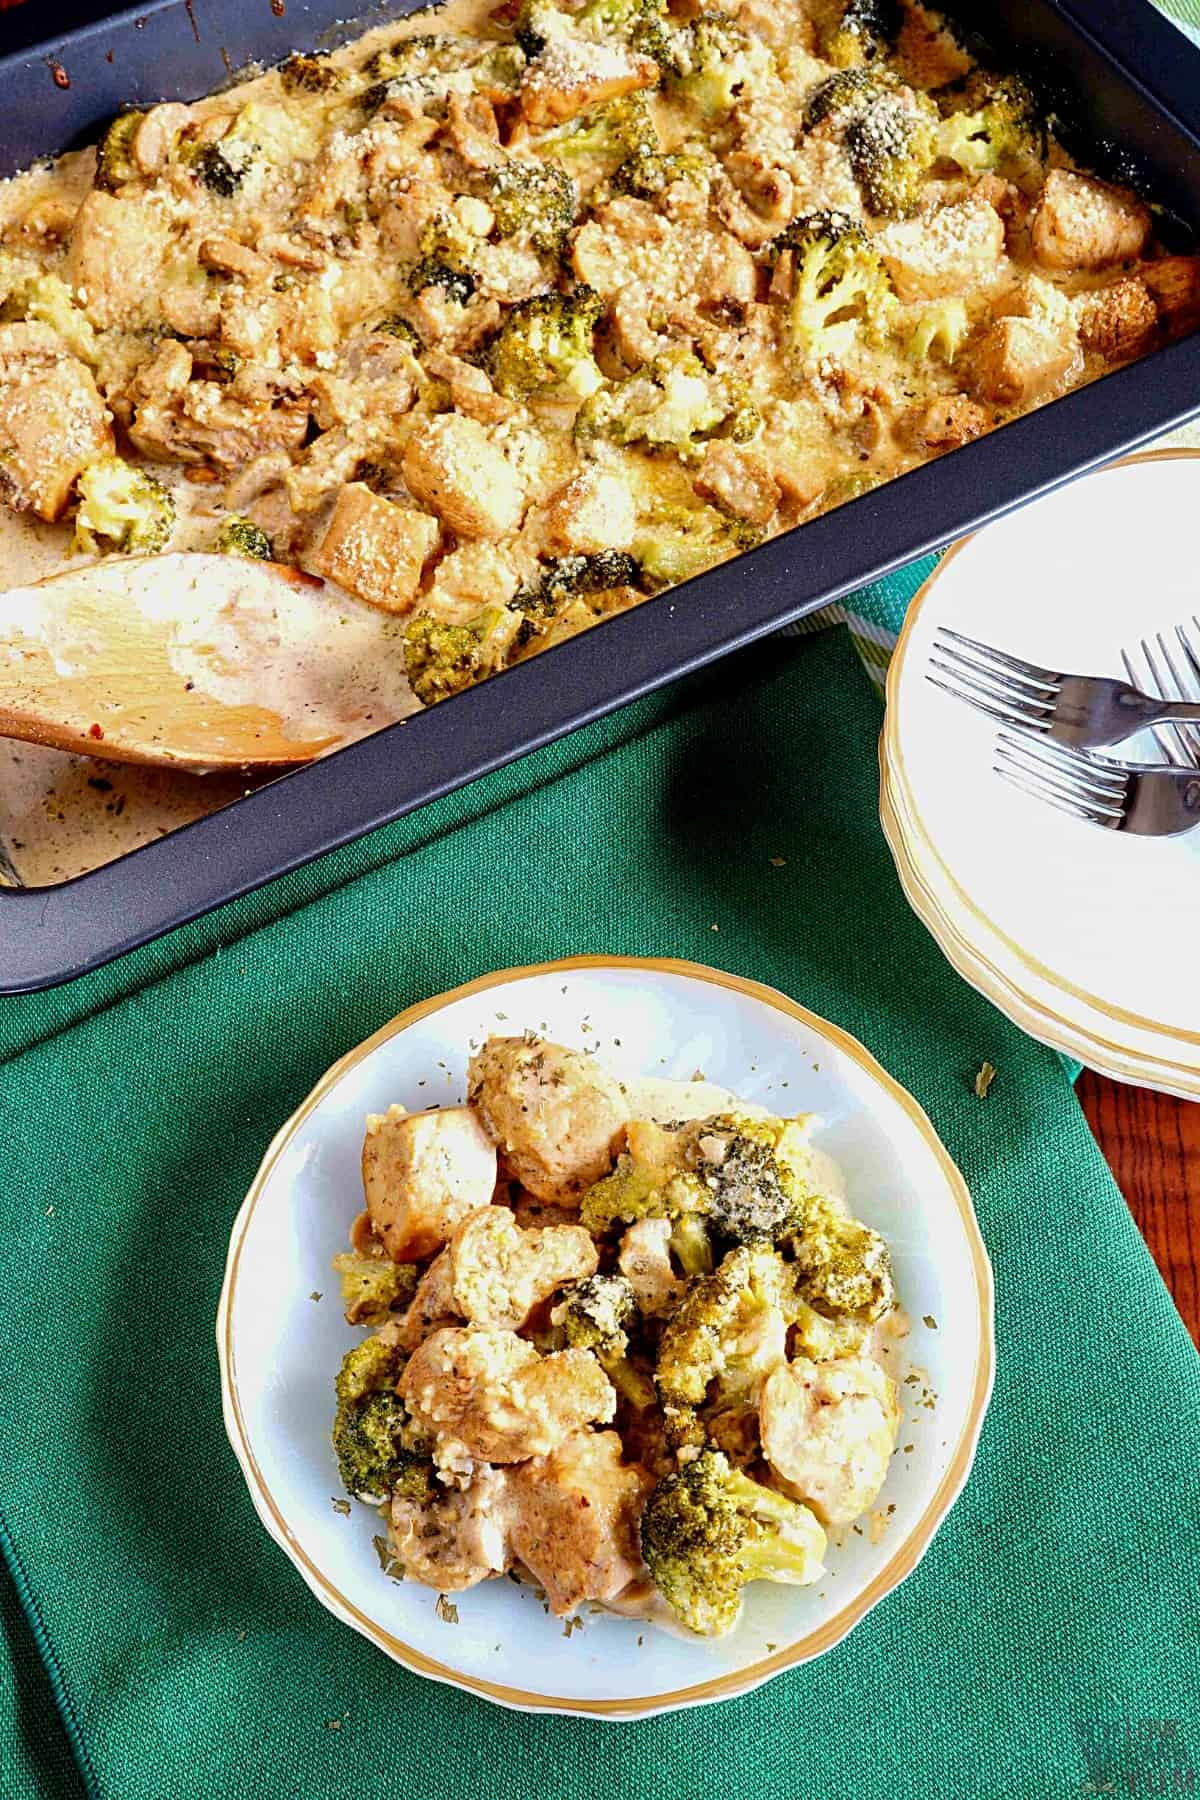 keto chicken broccoli casserole in baking pan and plate